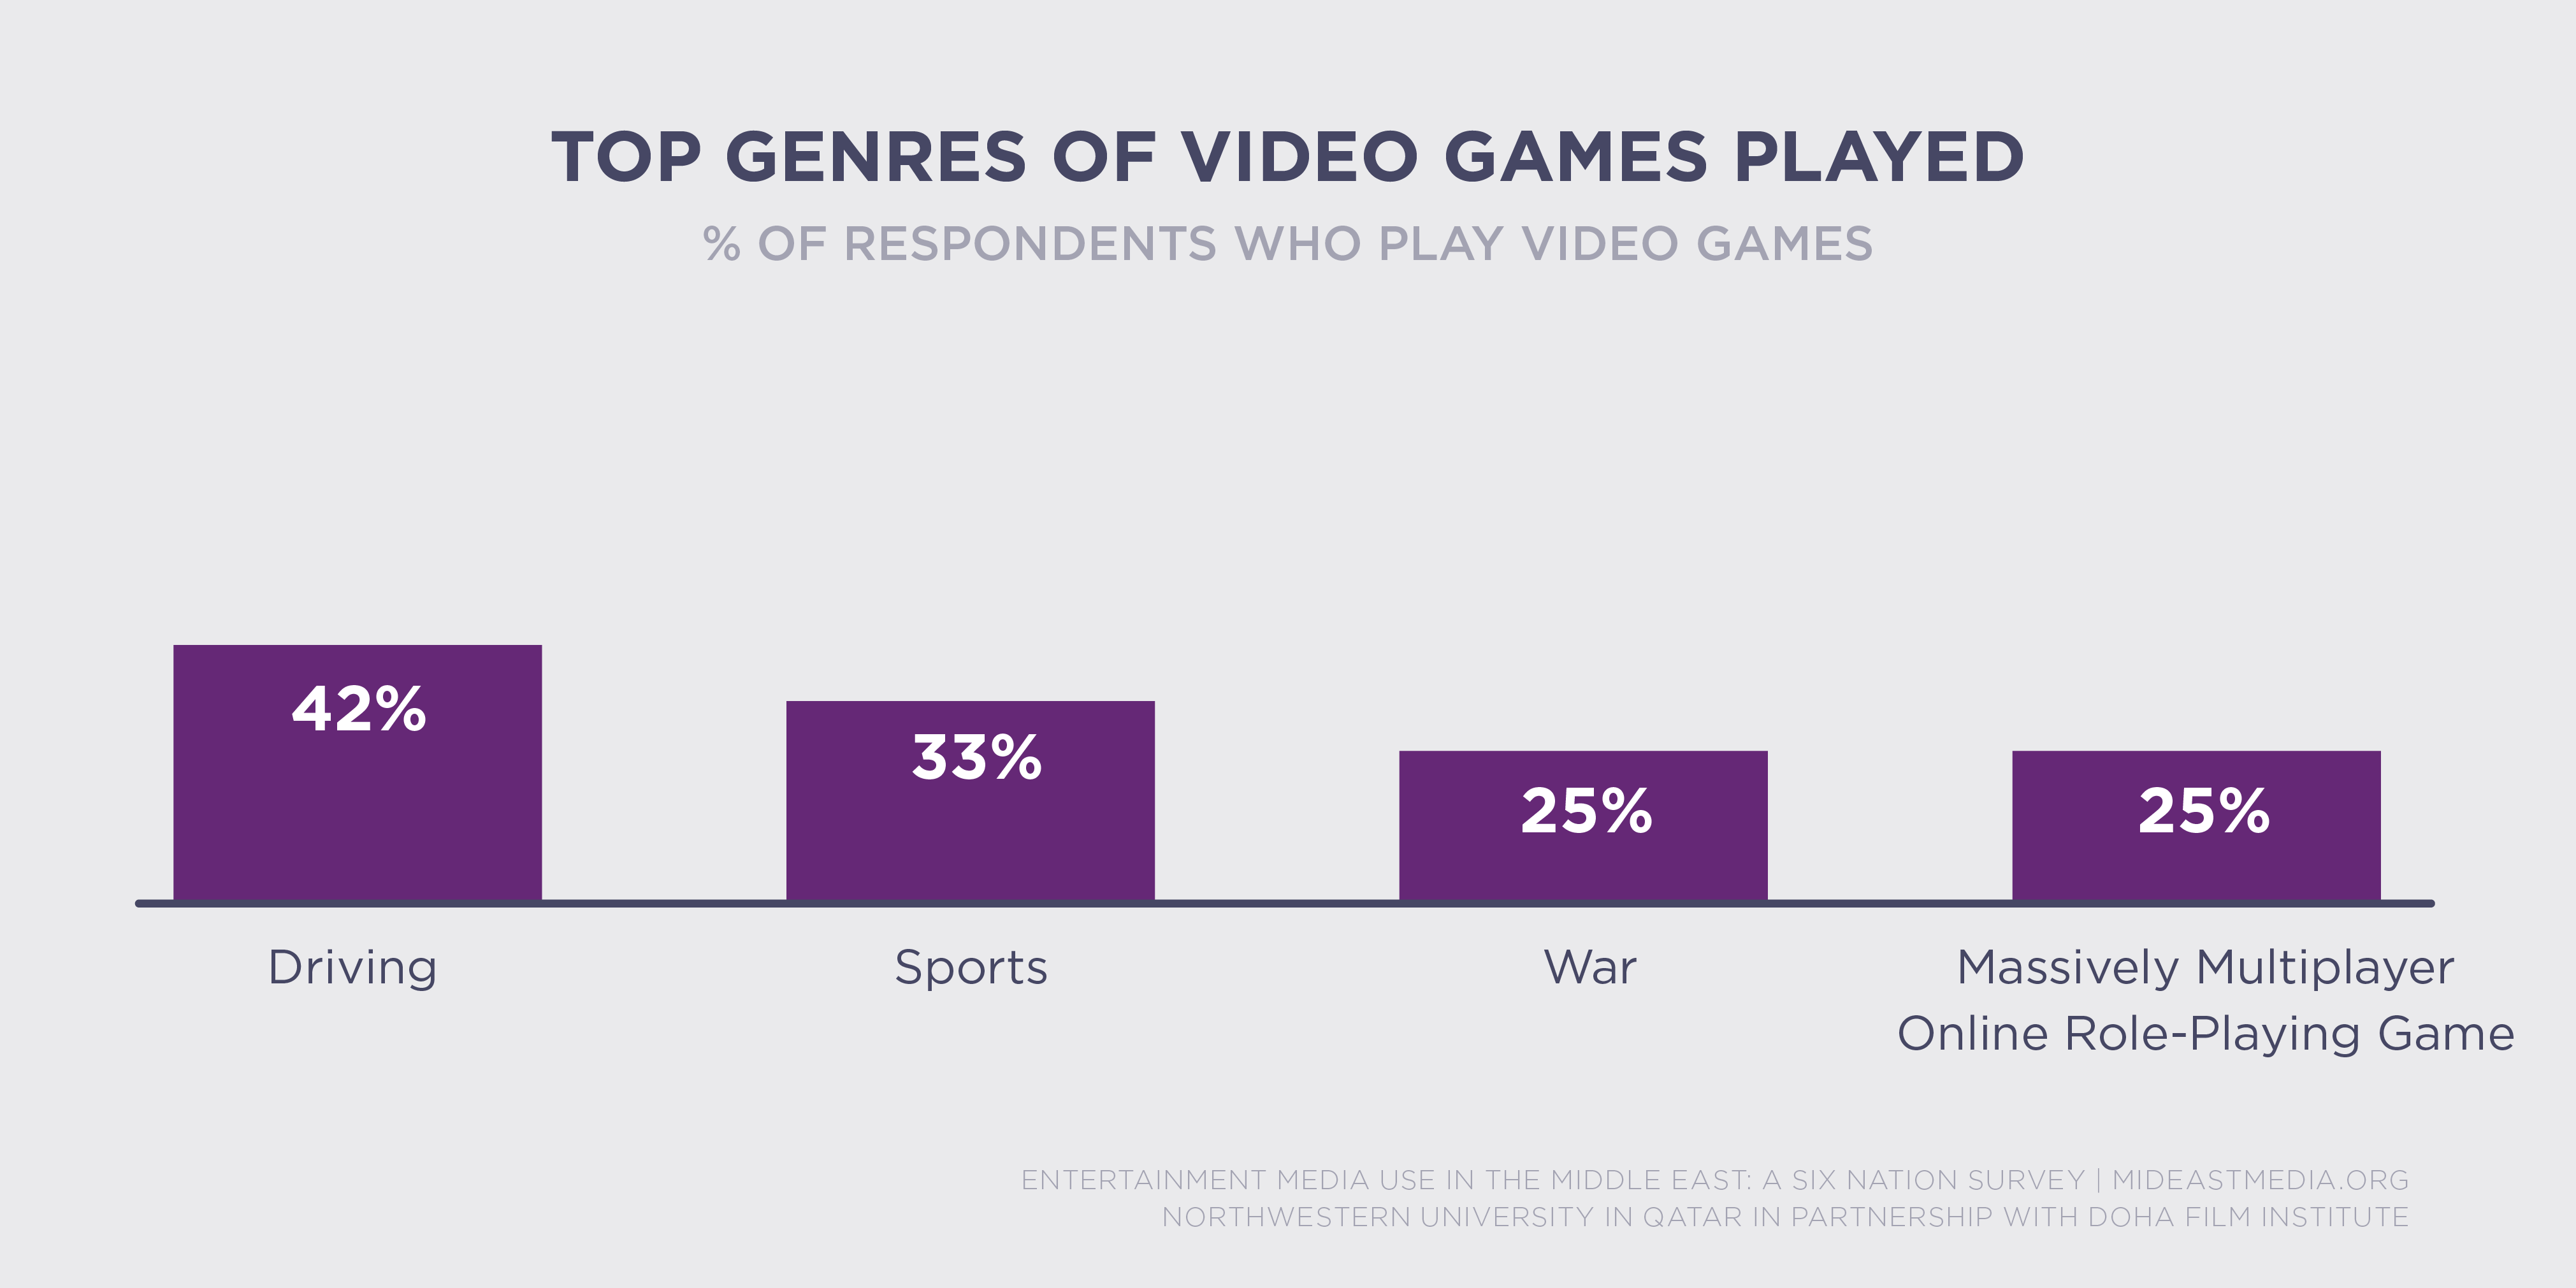 video game genres essay Some video games can even increase life-long and academic skills games like math and puzzle games have even been proven to increase academic capabilities students who engage in tycoon and marketing games often show increases in safe business and money habits.